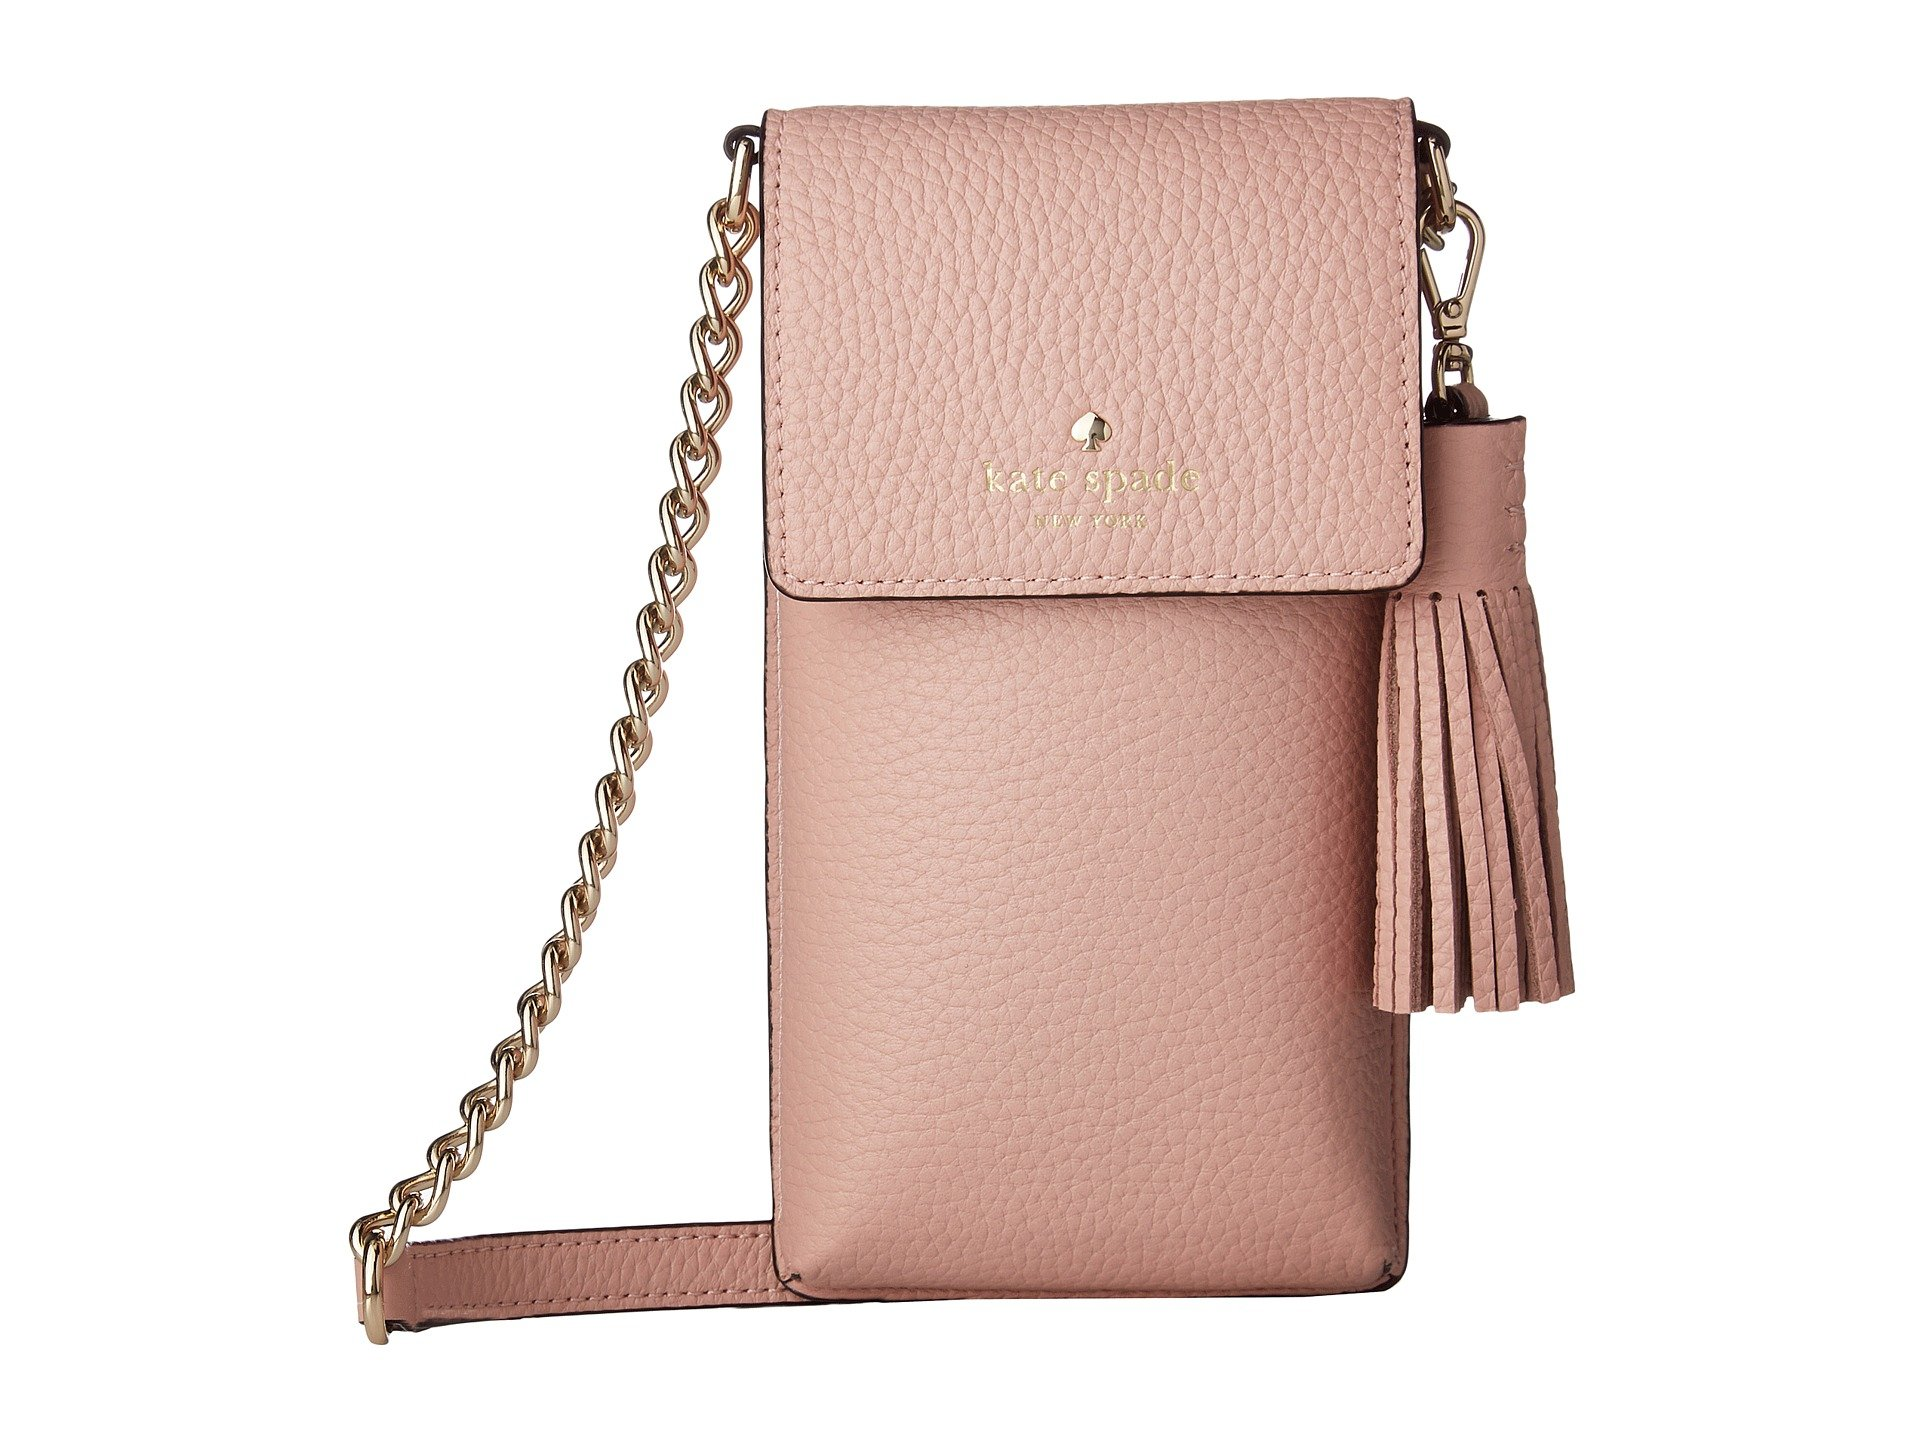 New Kate Spade New York North/South Crossbody Phone Case for iPhone 6, 6s, 7, 8 Rosy Cheeks Cell Phone Case, r